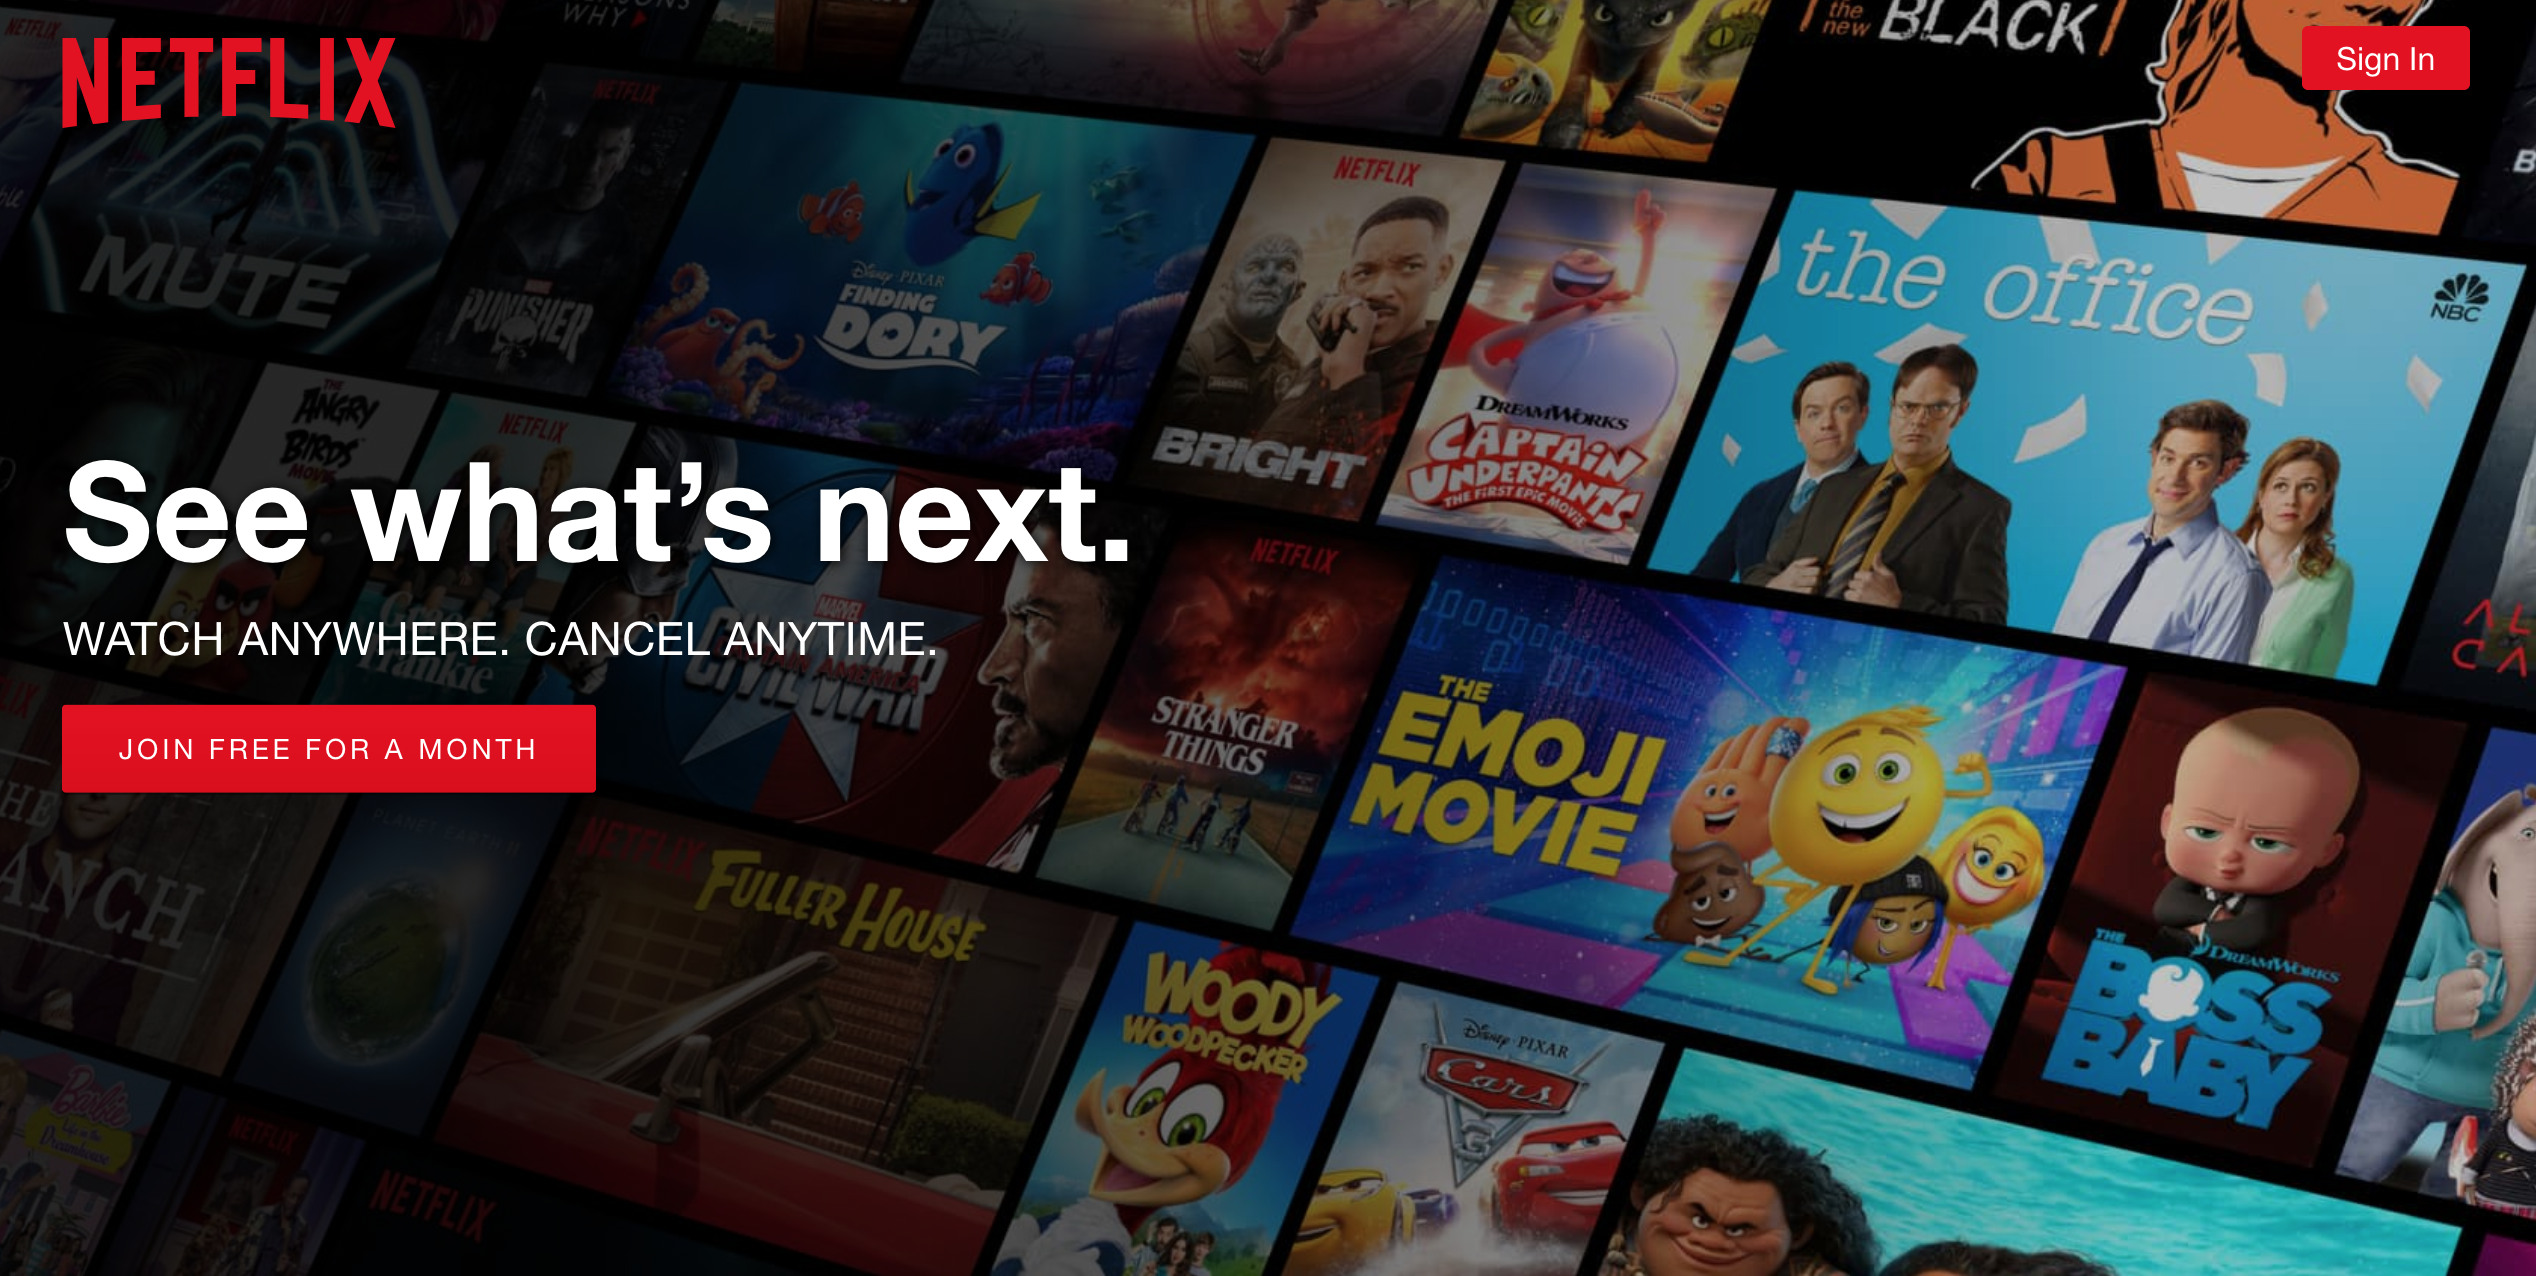 netflix saas marketing